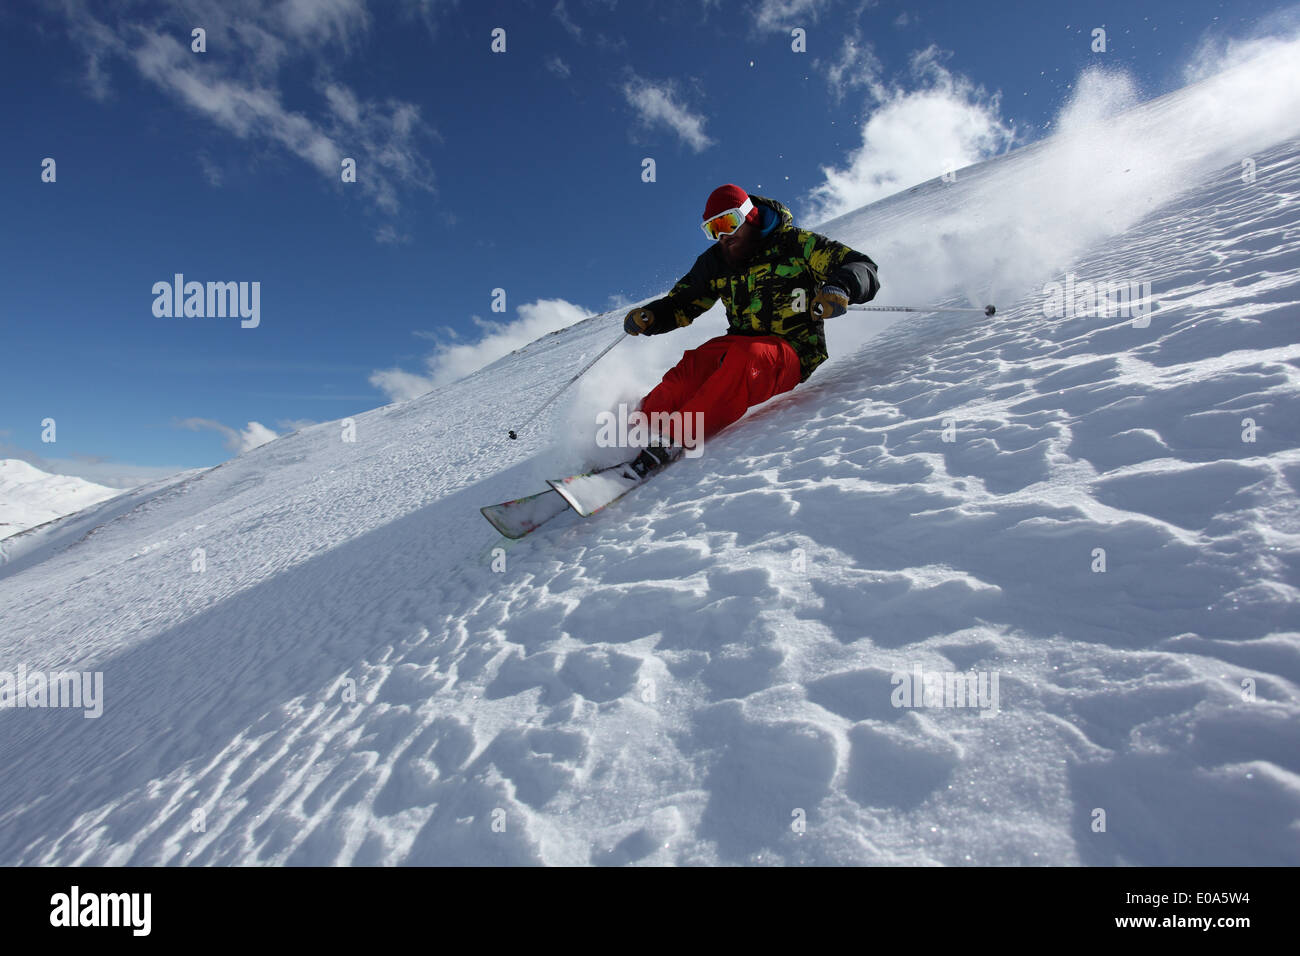 Mid adult man skiing down steep slope, Mayrhofen, Tyrol, Austria - Stock Image